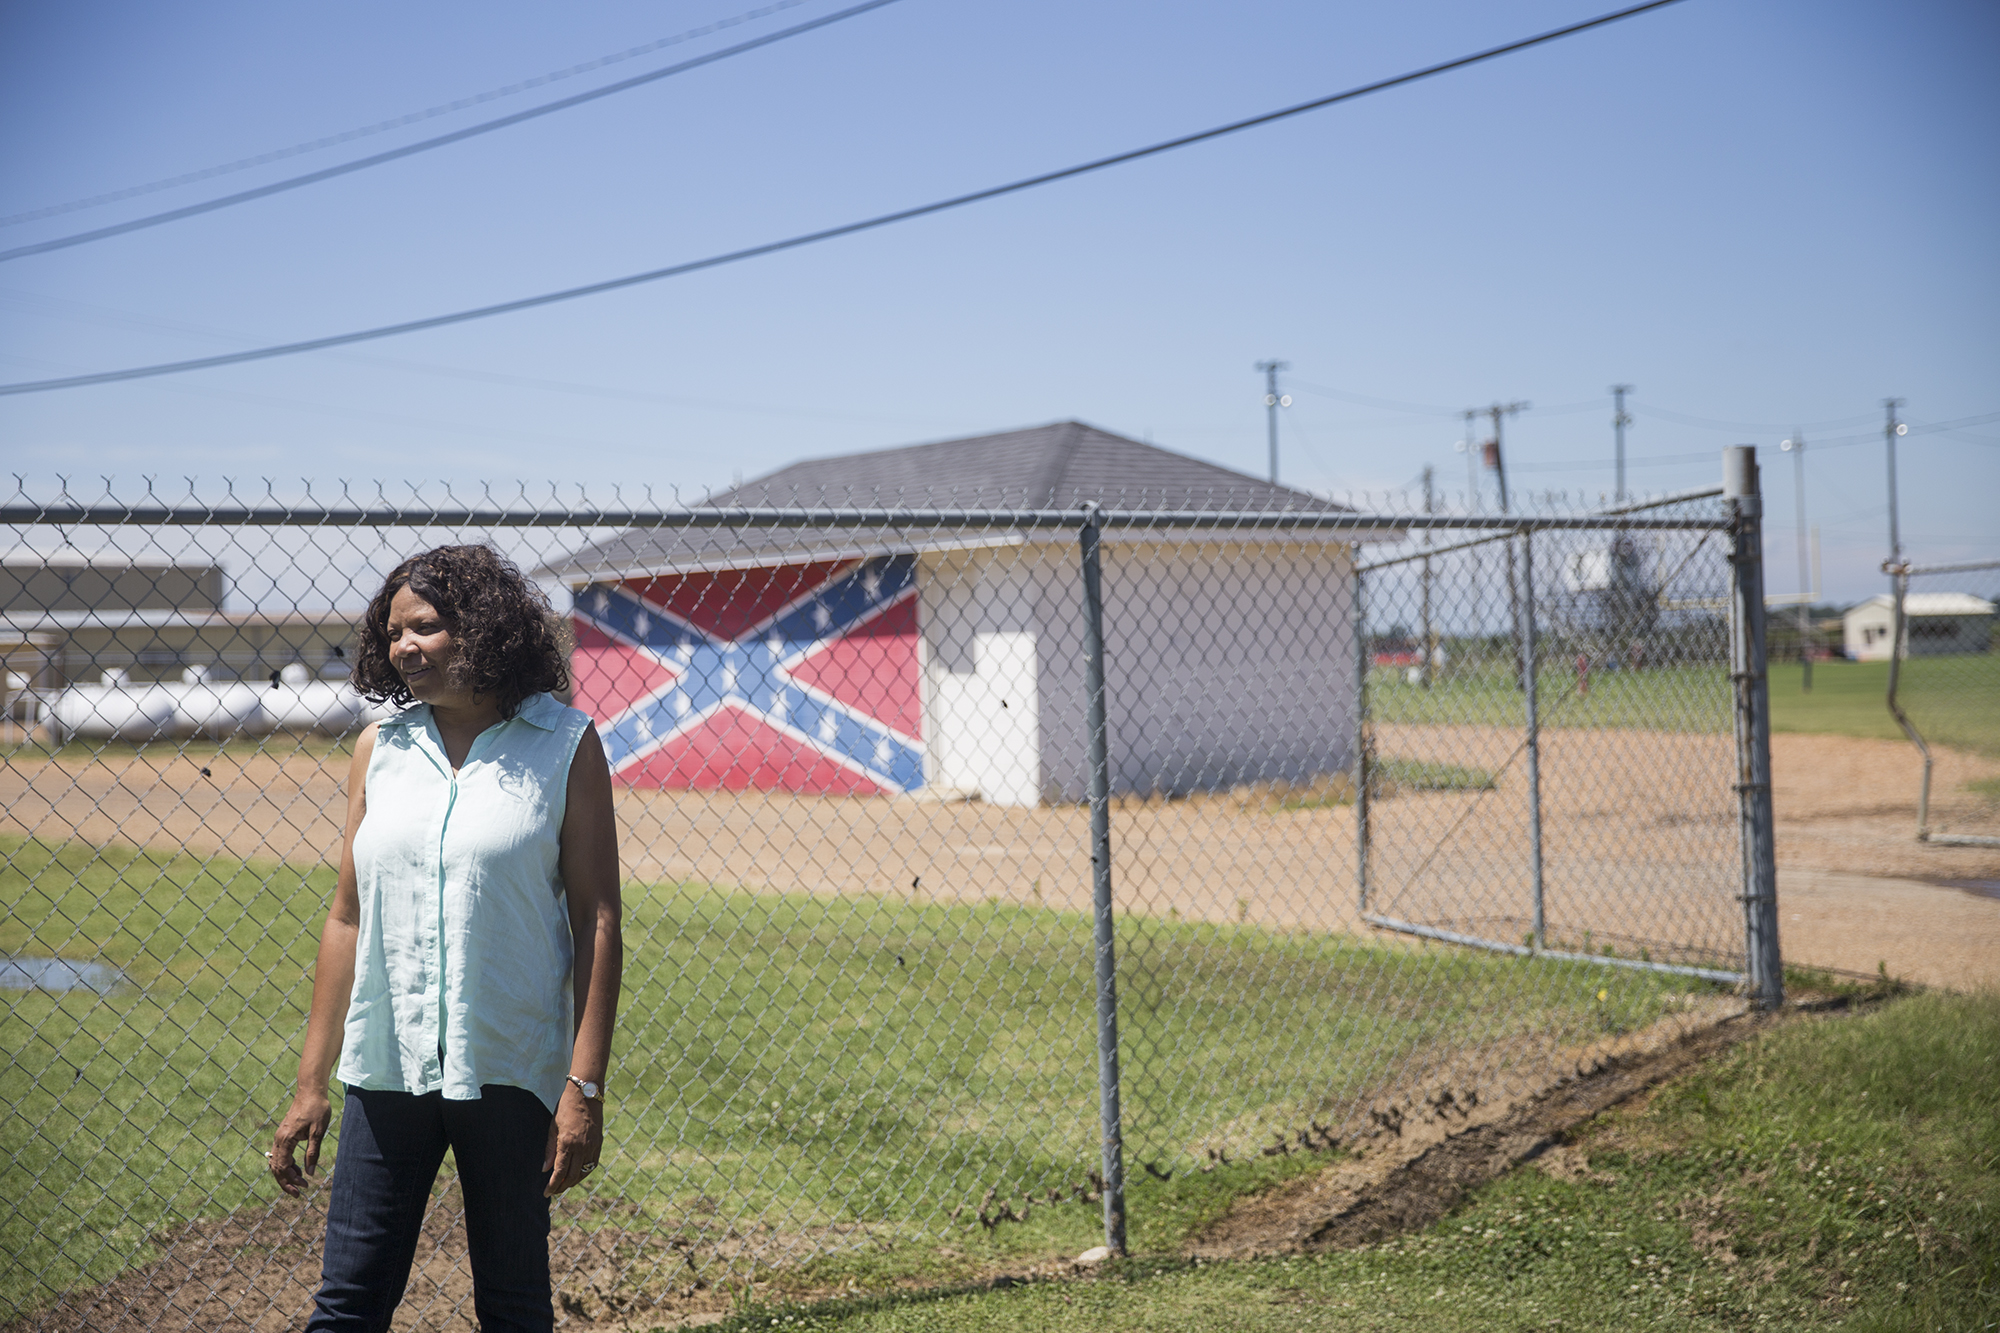 Gloria Dickerson stands in front of a shed at North Sunflower Academy, a private school where many white students enrolled after integration. Today the academy is the town's only high school, but enrolls white students almost exclusively. (Natalie Griffin/News21)